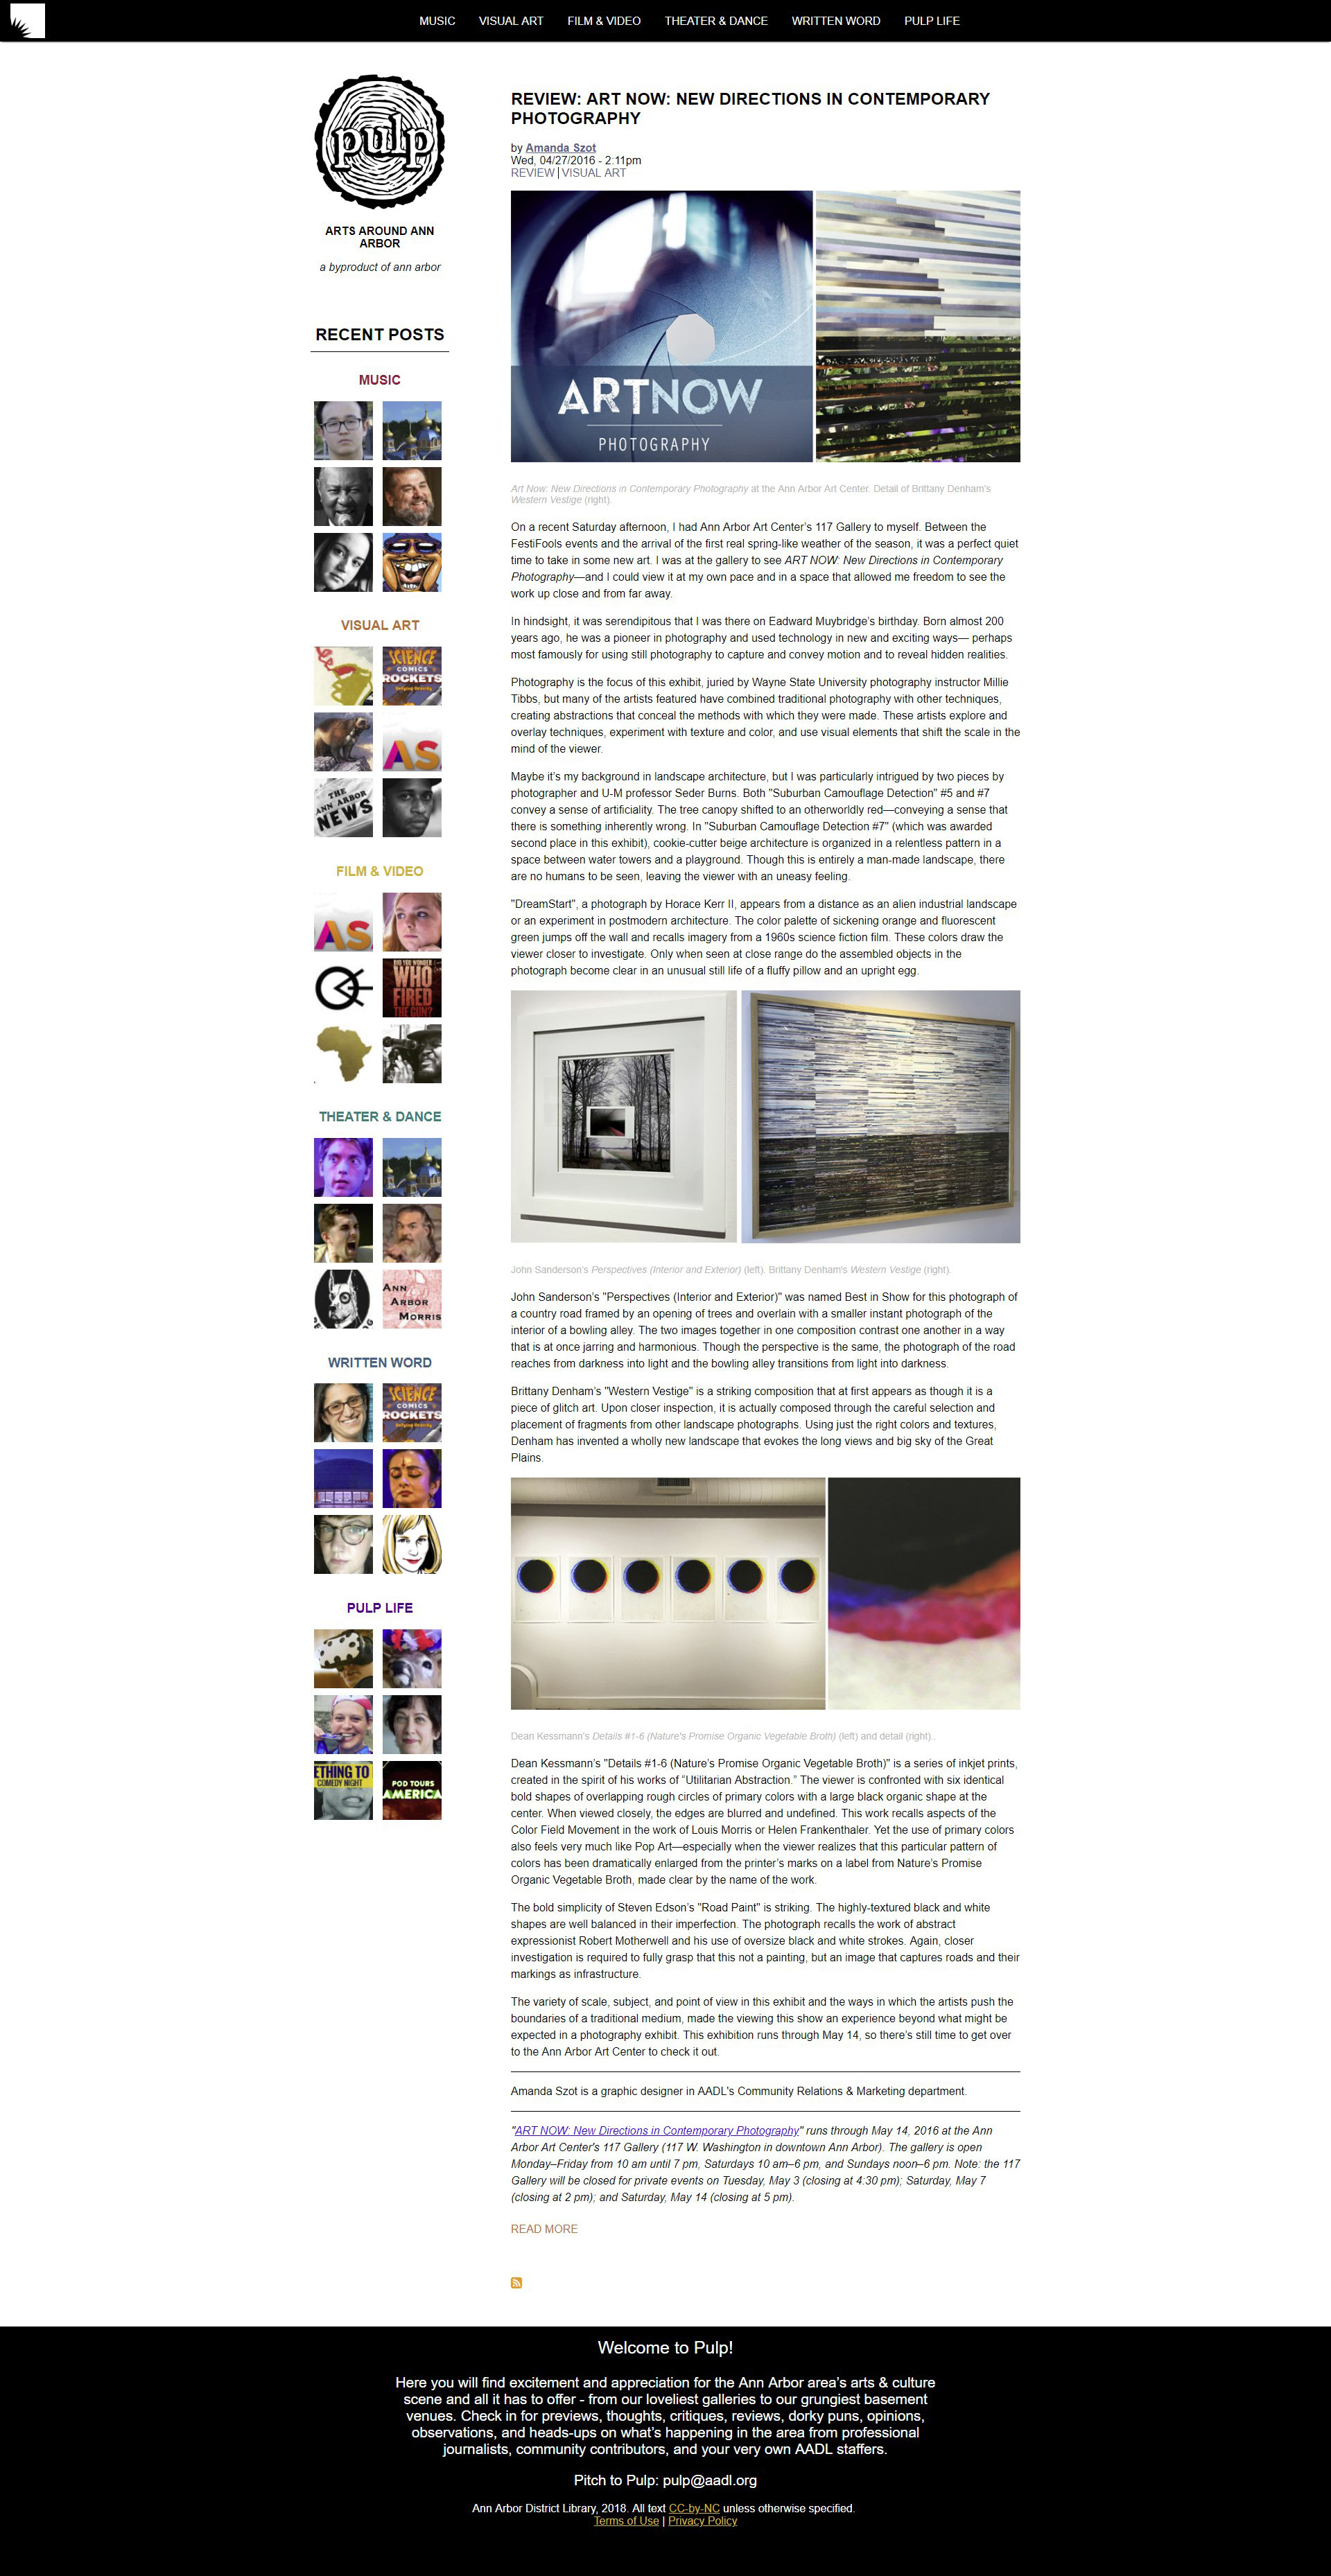 12-19-2016_ART NOW, New Directions in Contemporary Photography_PULP Arts Around Ann Arbor.jpg